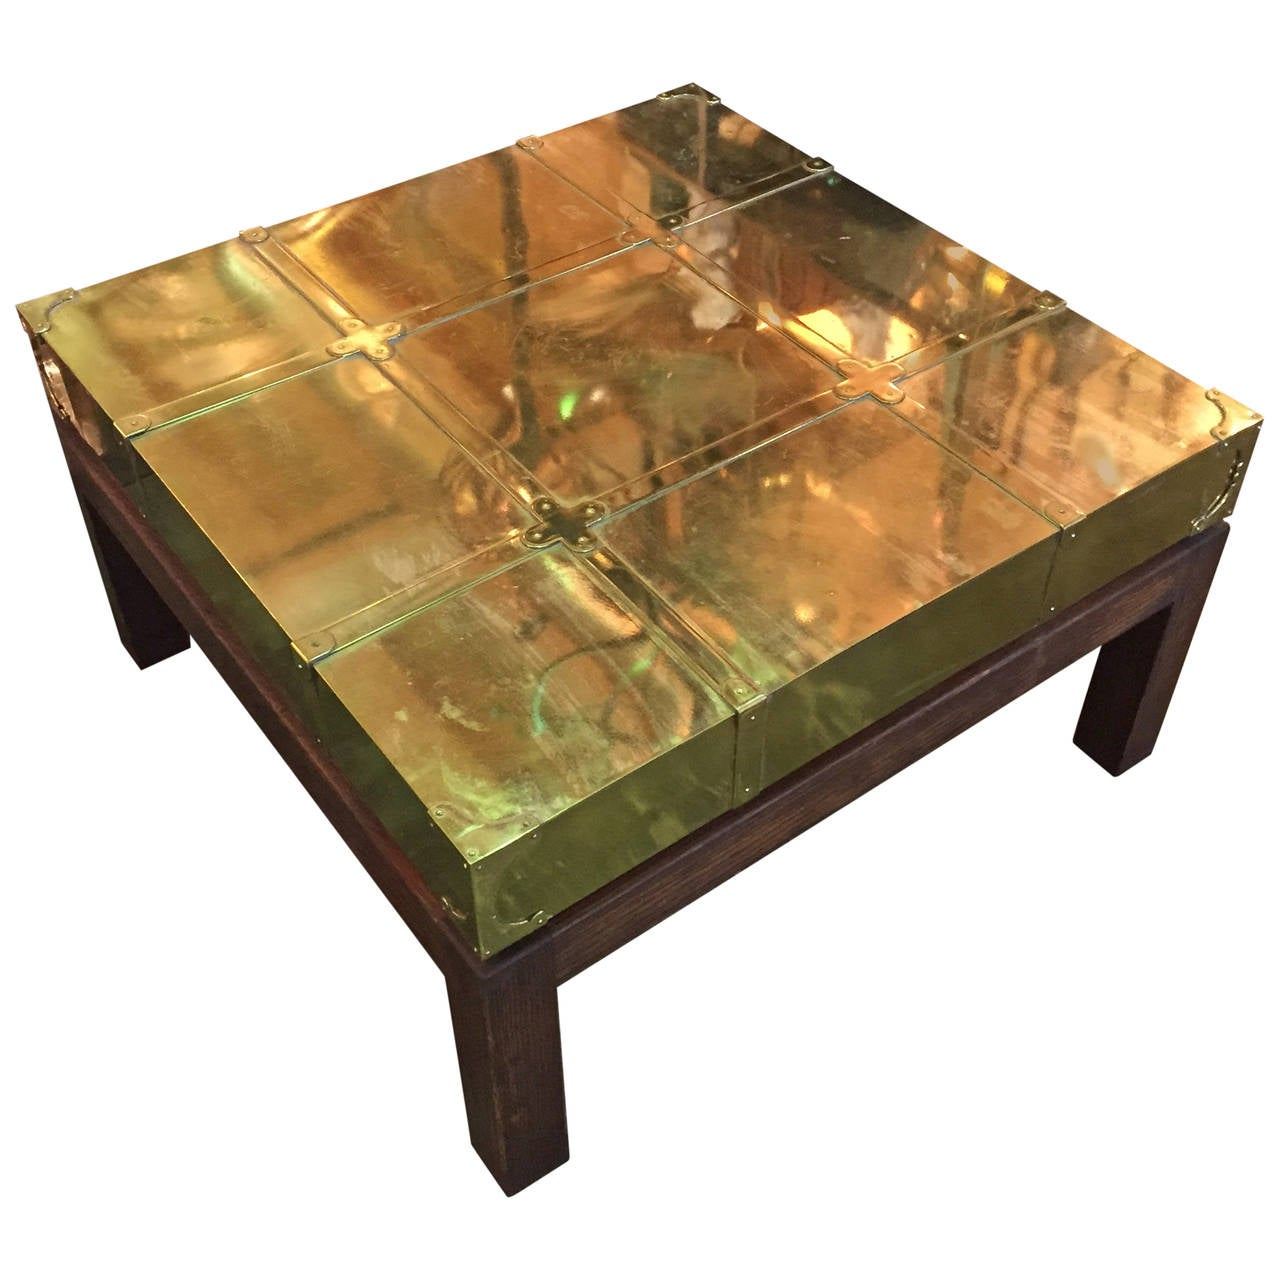 Brass Coffee Table By Sarreid Ltd. Of Spain At 1stdibs